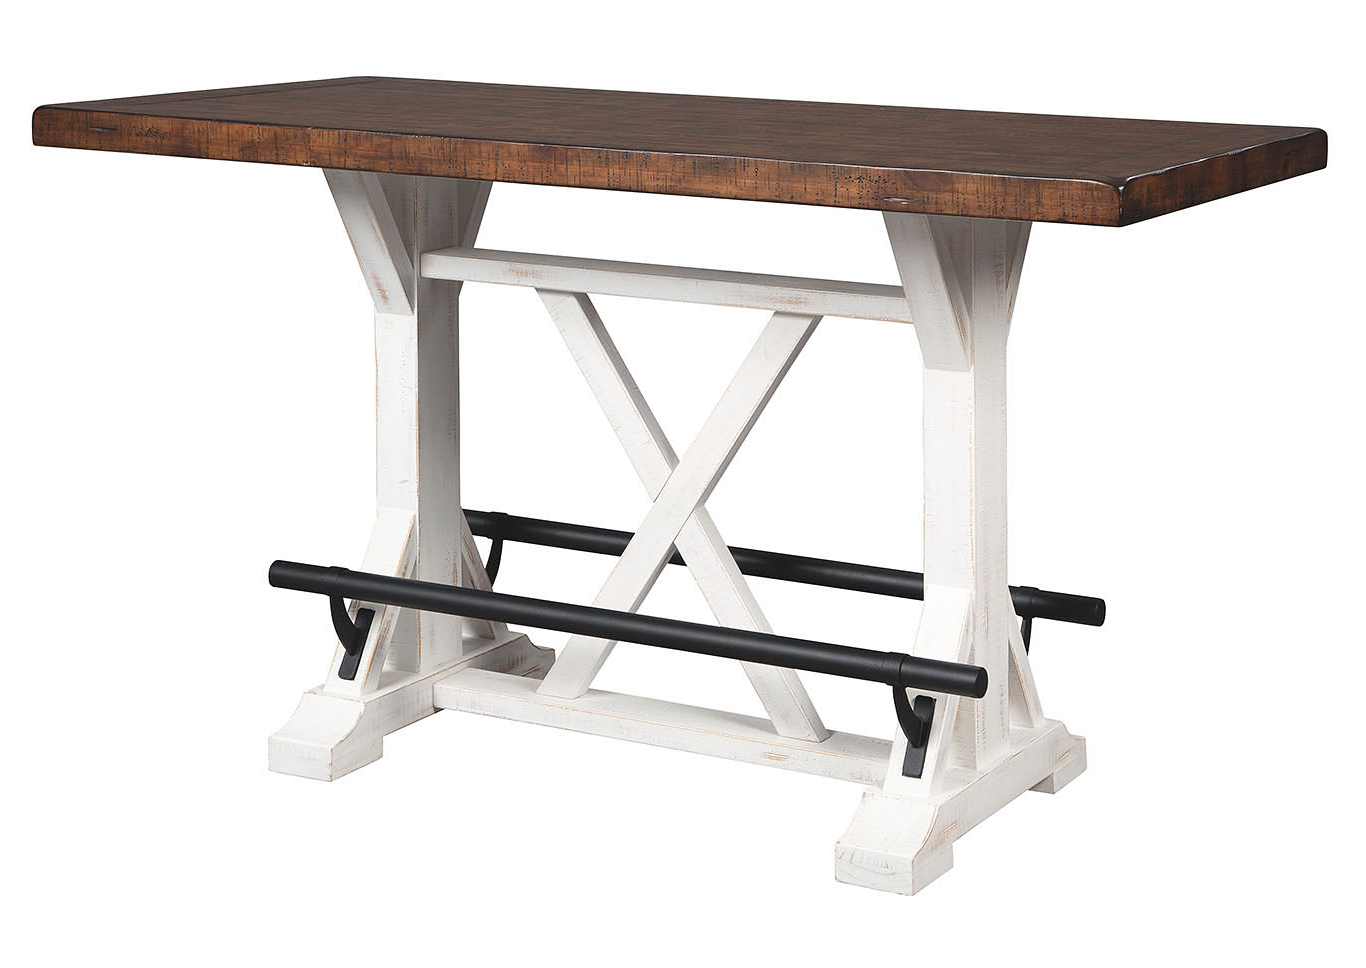 Roberts Furniture & Mattress Valebeck White/brown Counter Table For Best And Newest Small Dining Tables With Rustic Pine Ash Brown Finish (View 28 of 30)